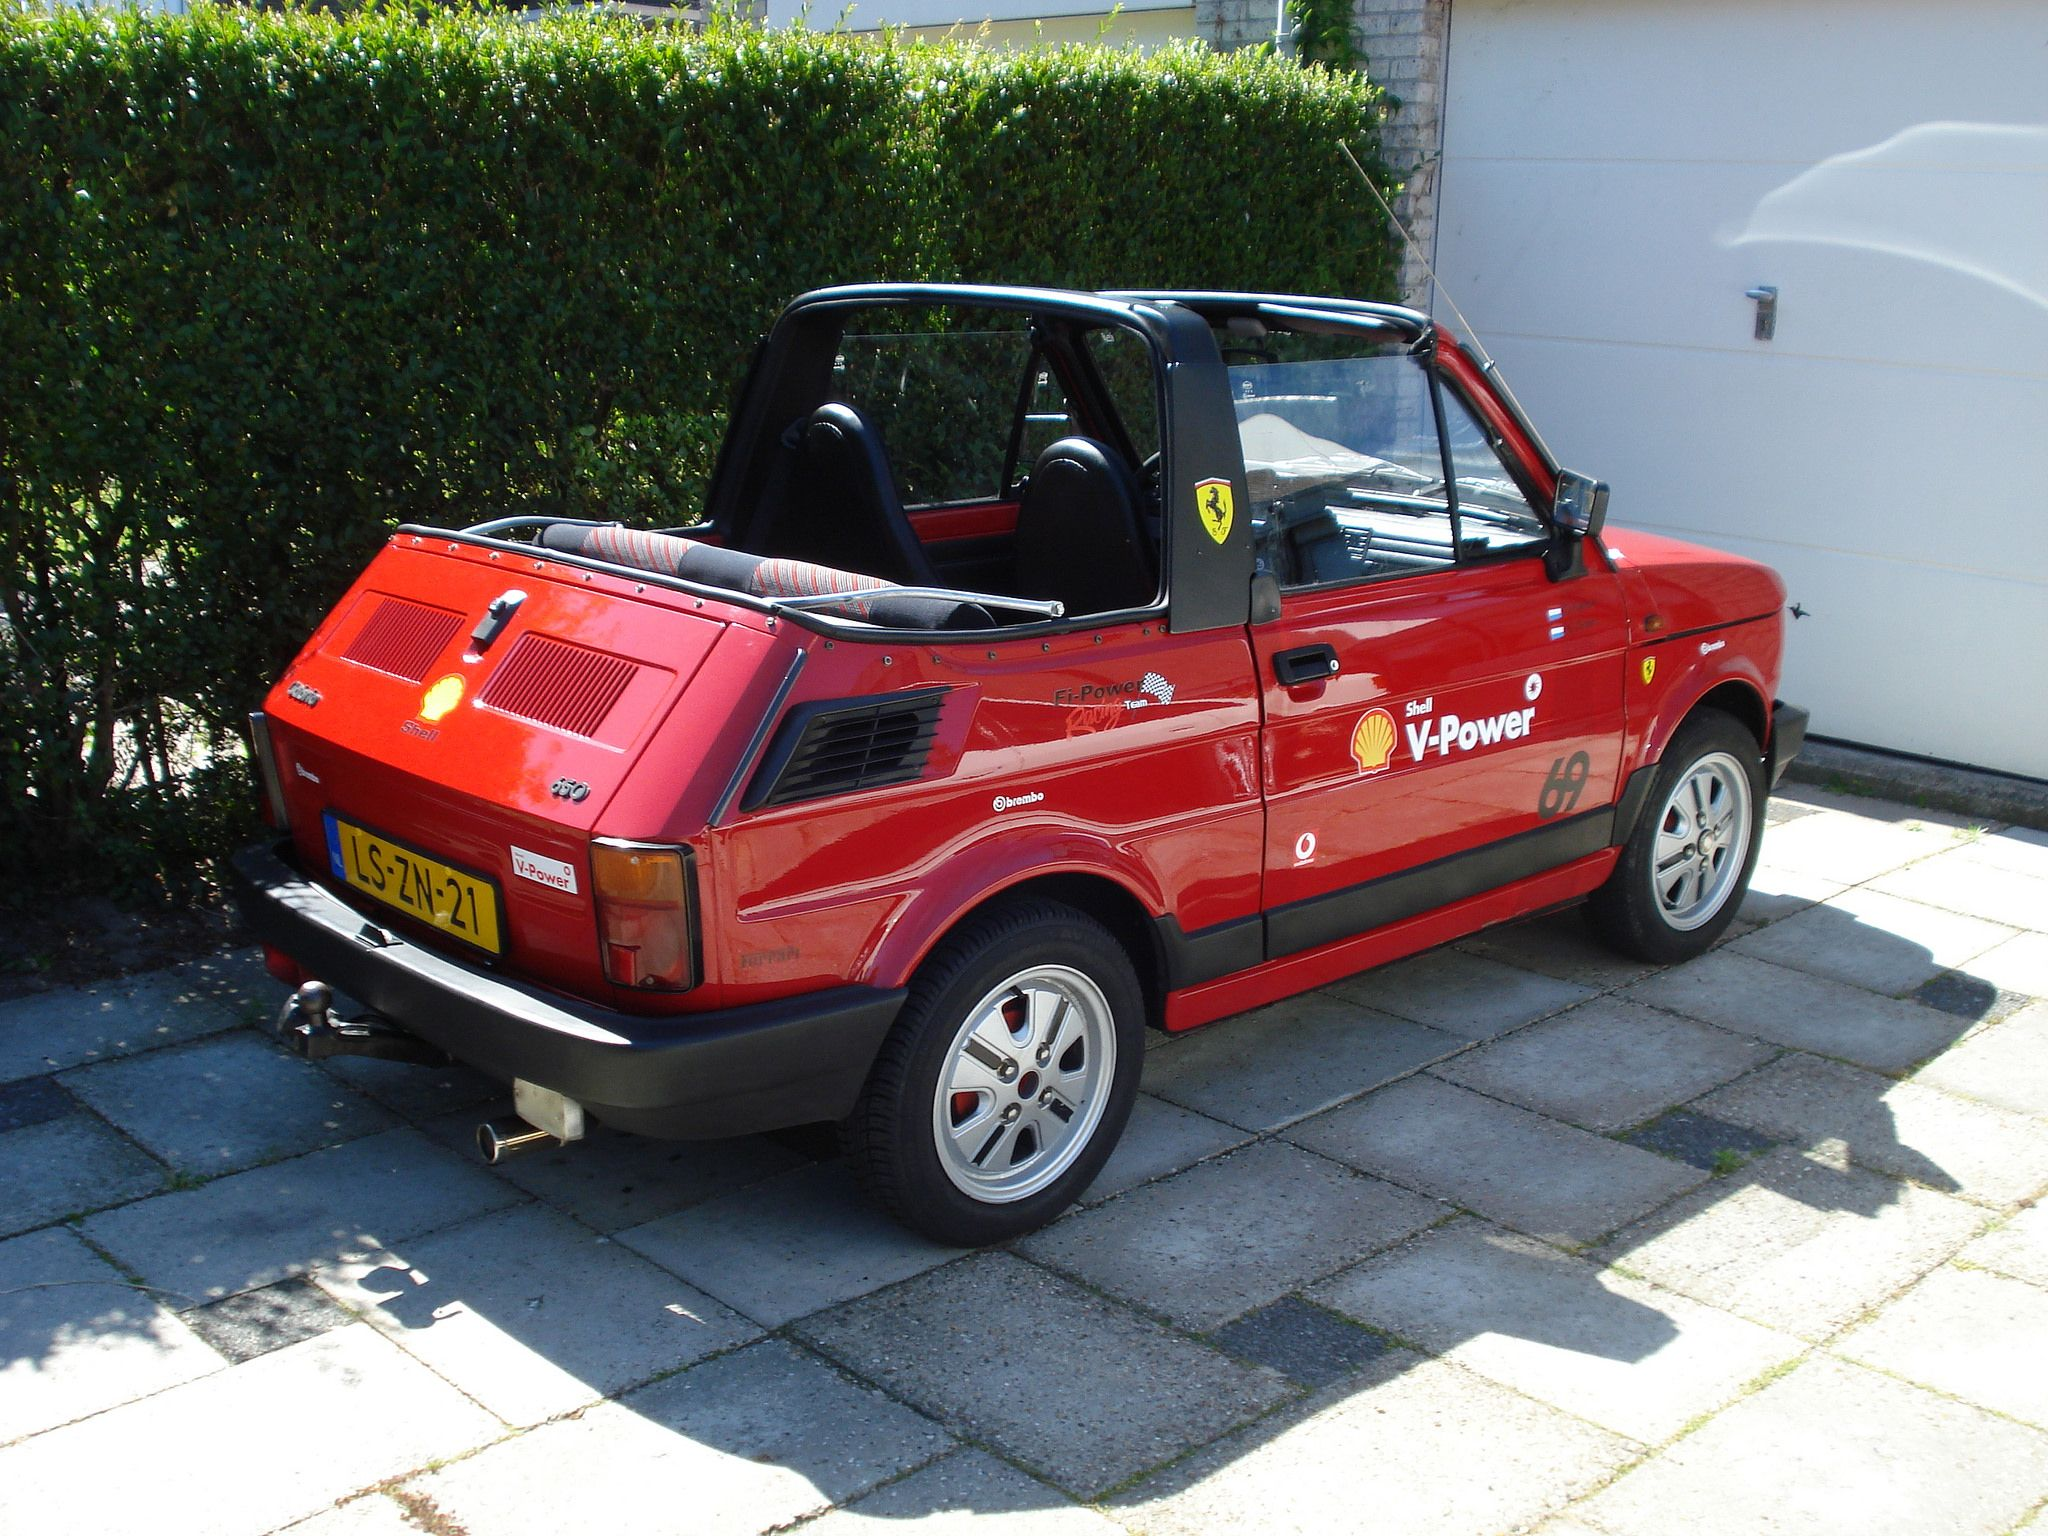 1995 Bosmal Cabrio 650 PolskiFiat 126p  Fiat, Fiat 126 and Cars